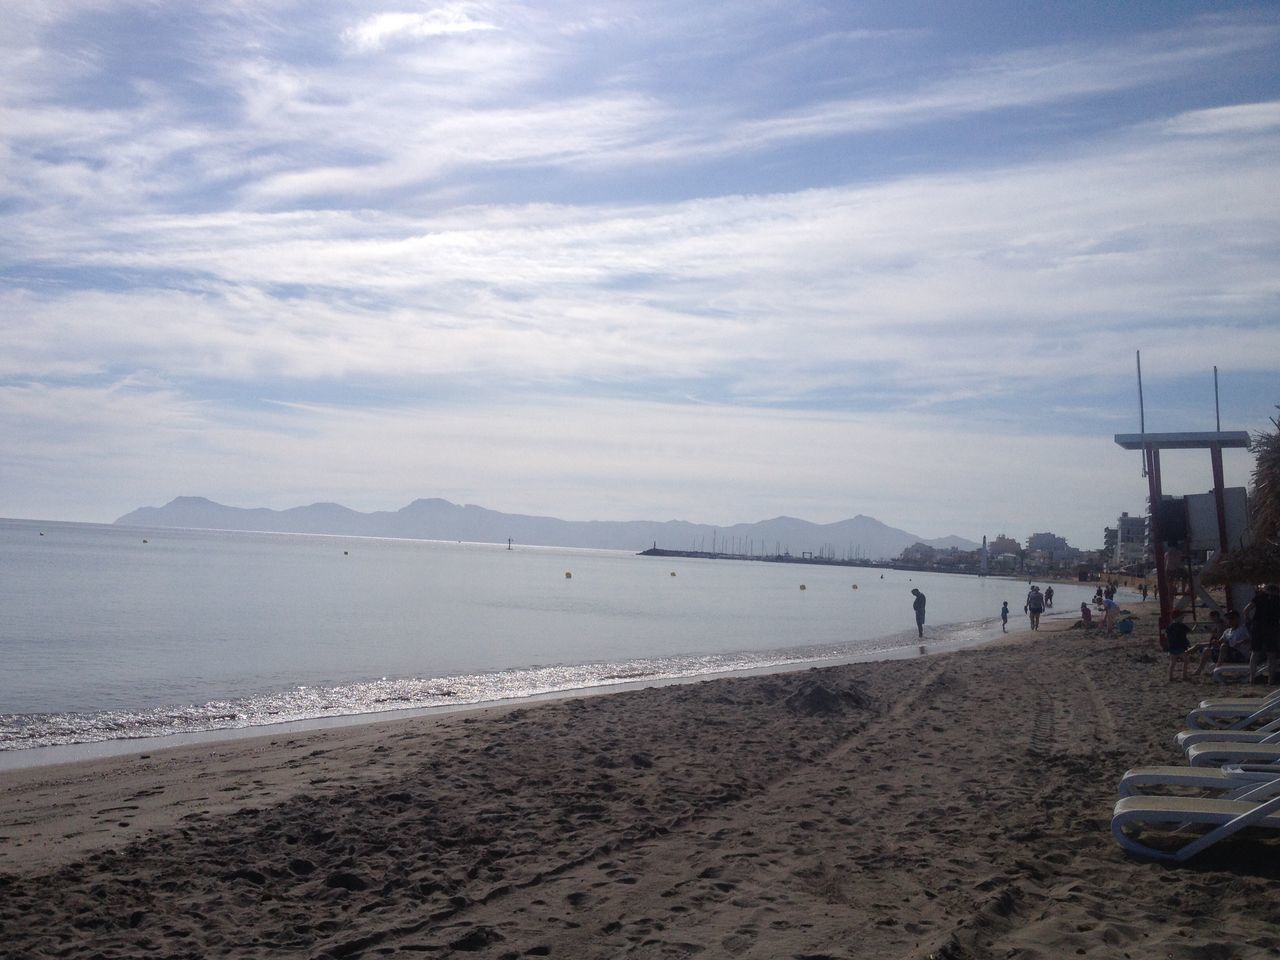 beach, sand, sea, water, sky, shore, cloud - sky, nature, scenics, beauty in nature, tranquil scene, outdoors, day, horizon over water, vacations, no people